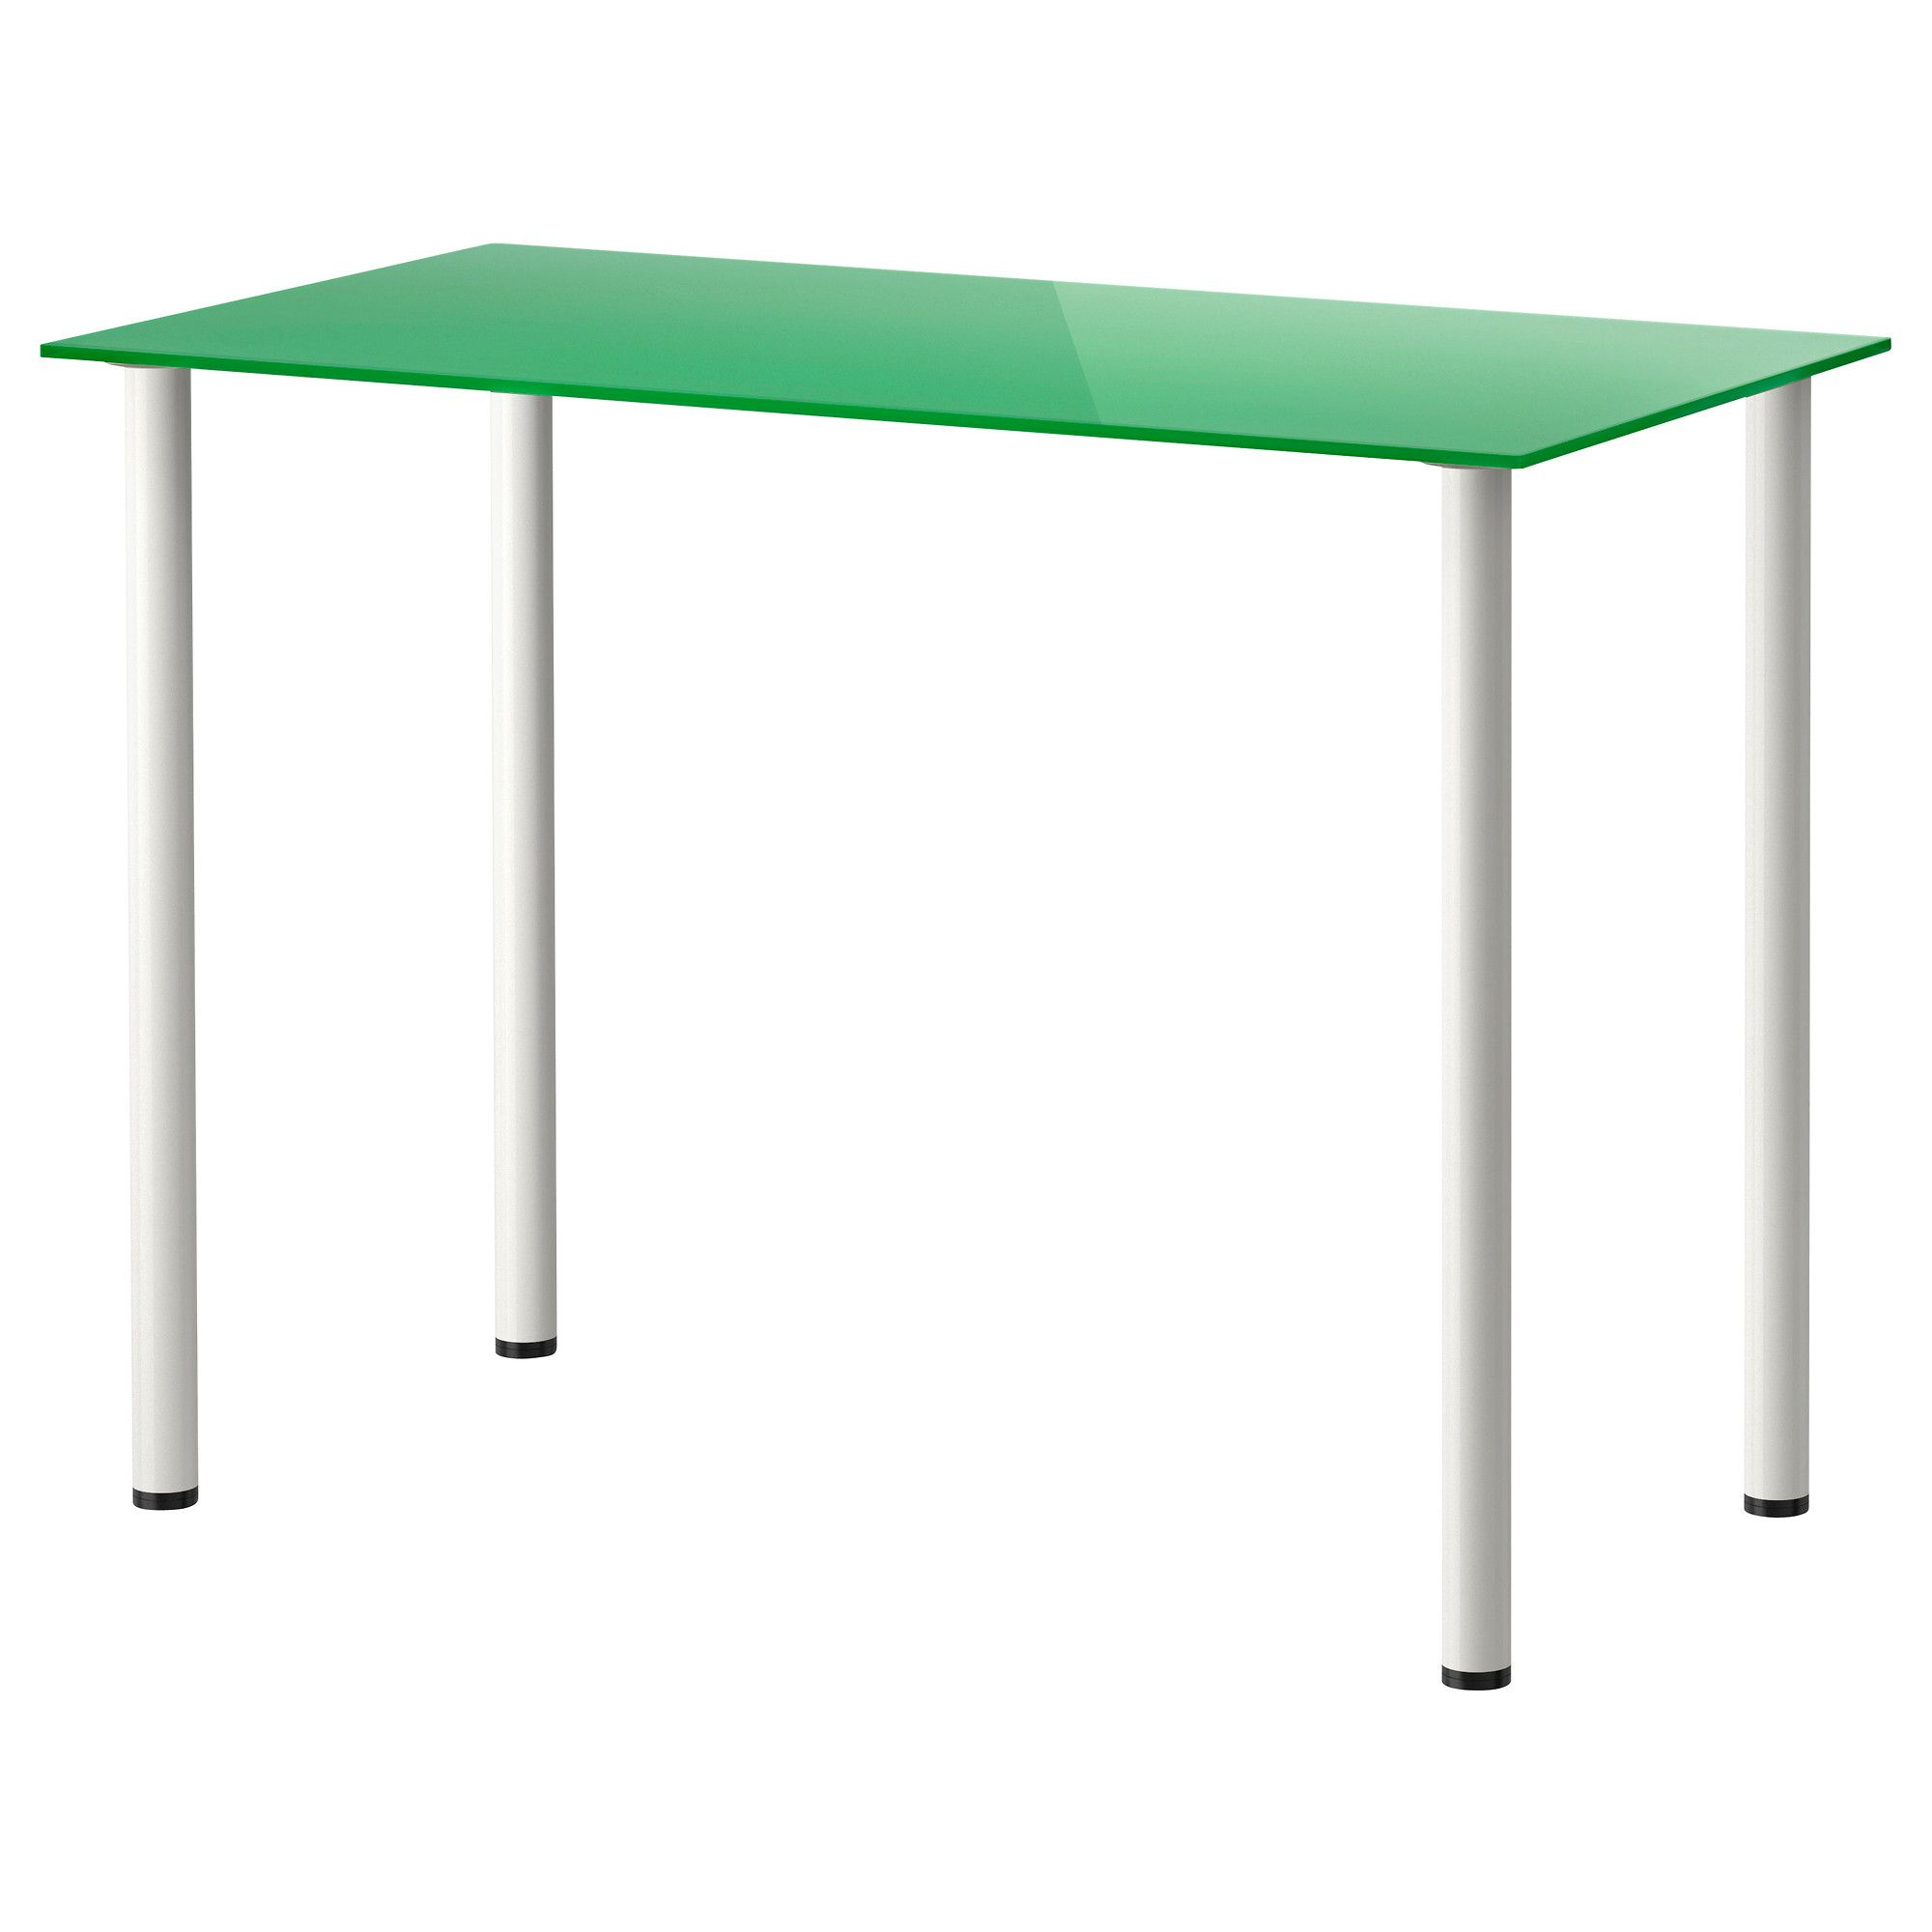 Ikea Us Furniture And Home Furnishings Furniture Furniture Design Modern Ikea Desk Top